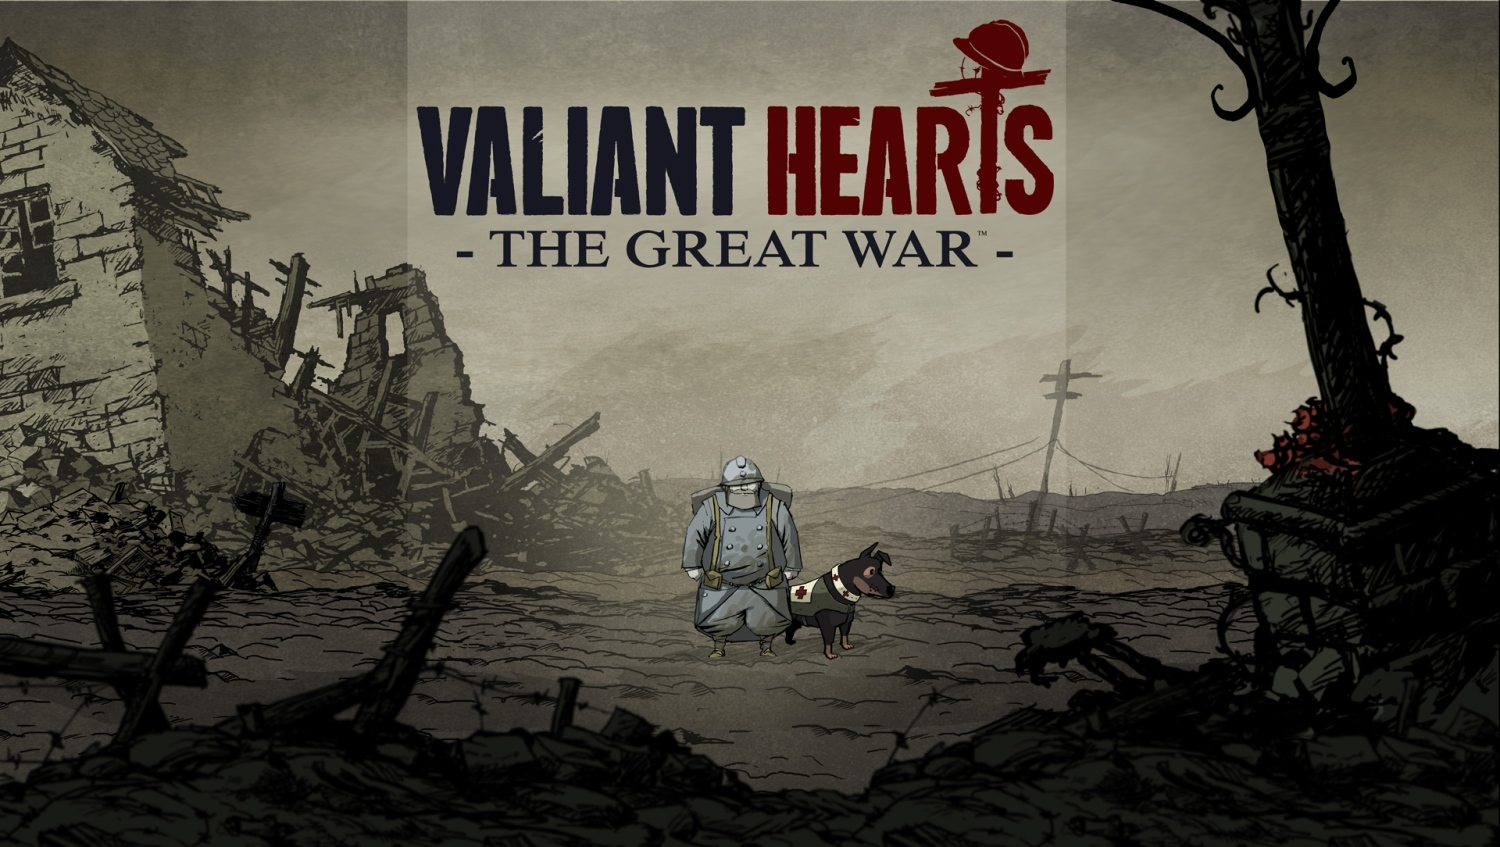 Valiant-Hearts-Cover